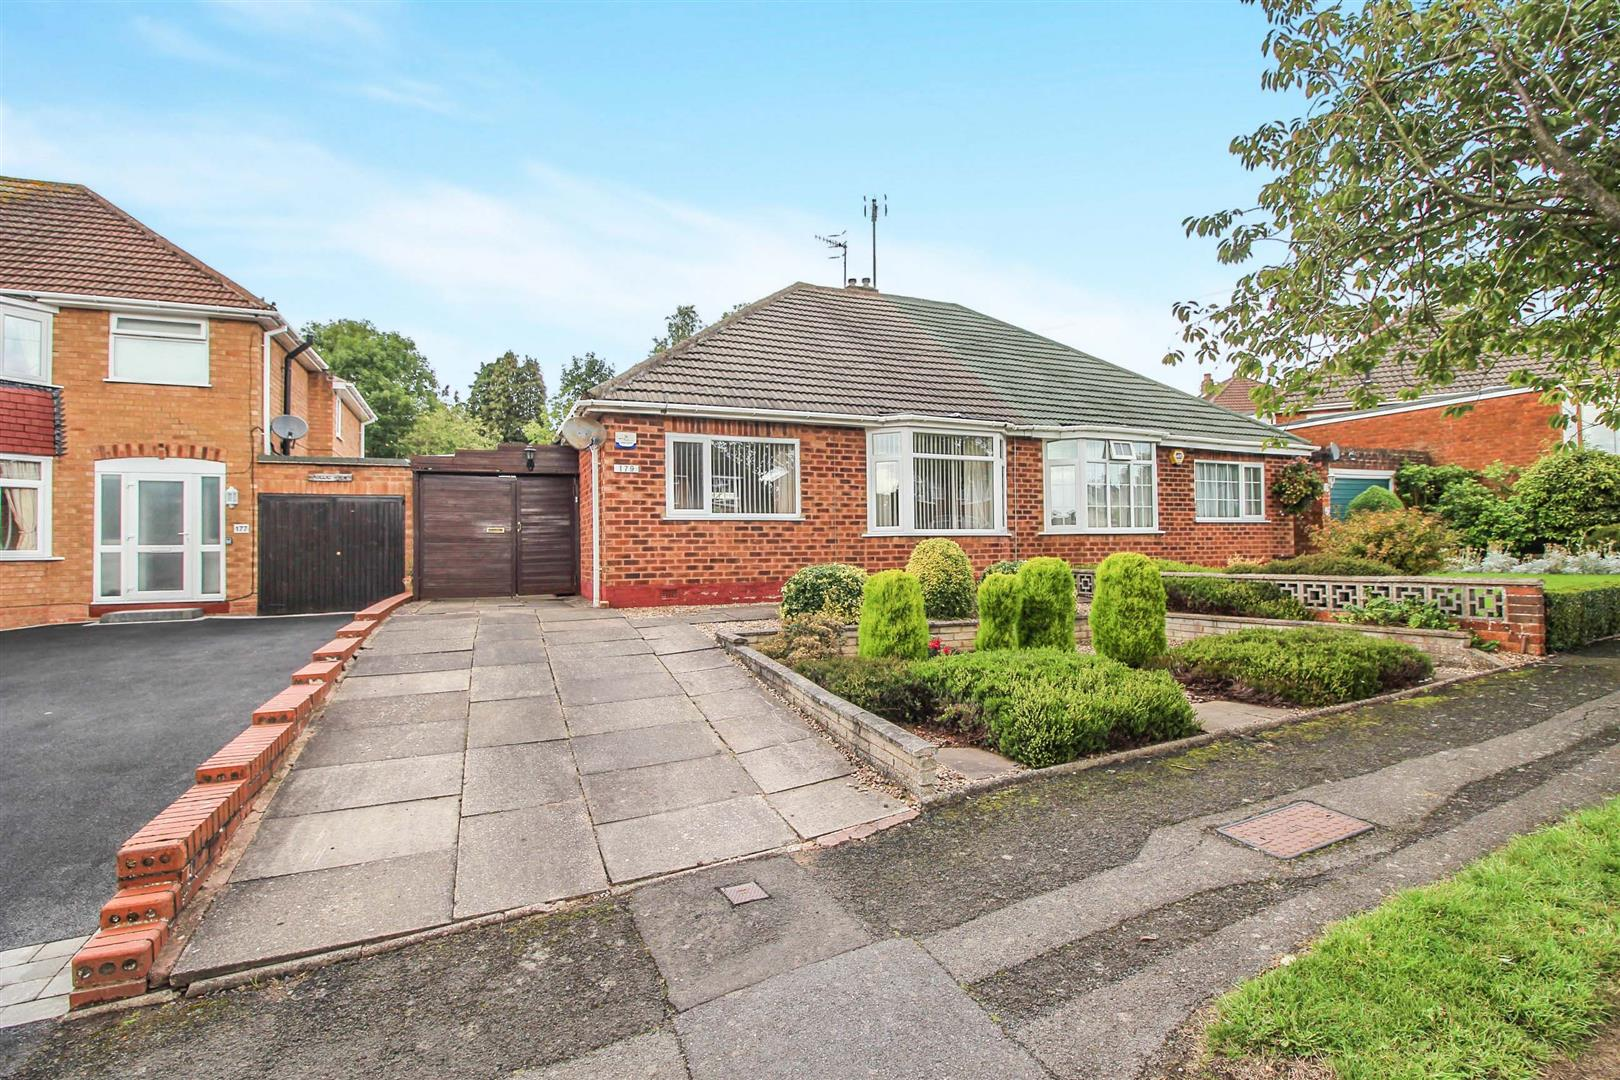 2 Bedrooms Semi Detached Bungalow for sale in Mason Road, Redditch